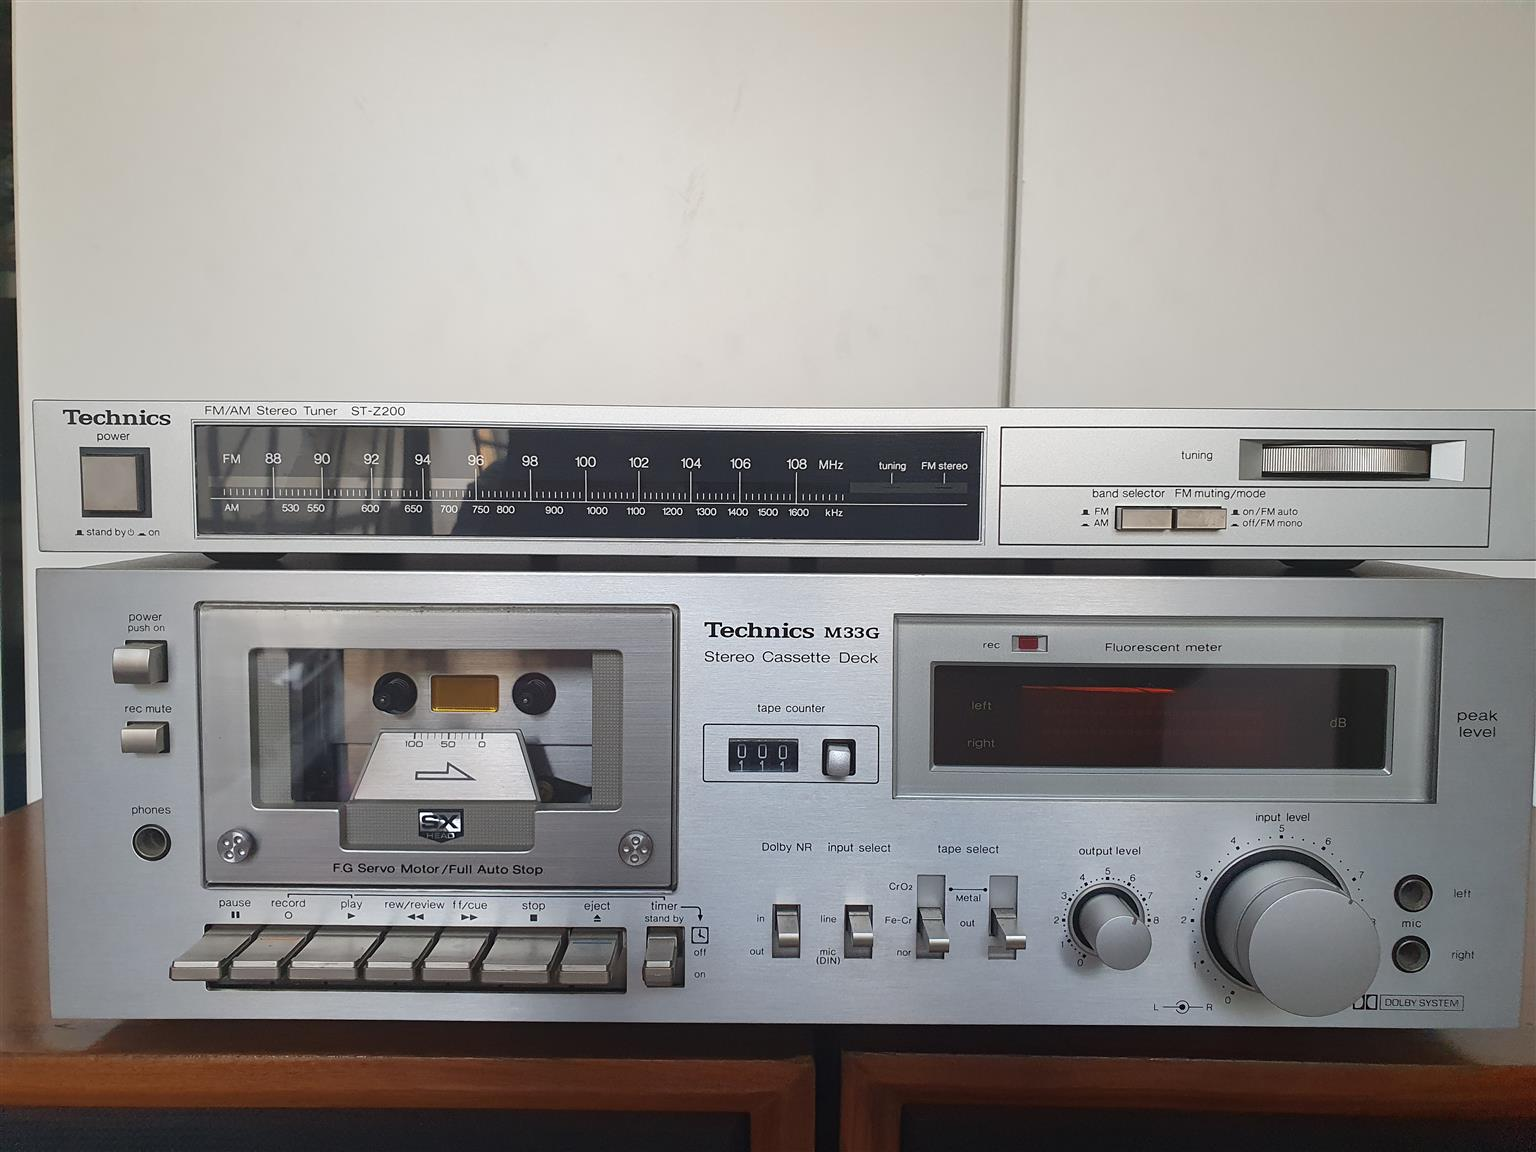 Technics SU-8044 Intergrated Amplifier with Technics M33G Tape deck and Technics ST-Z200 Turner.